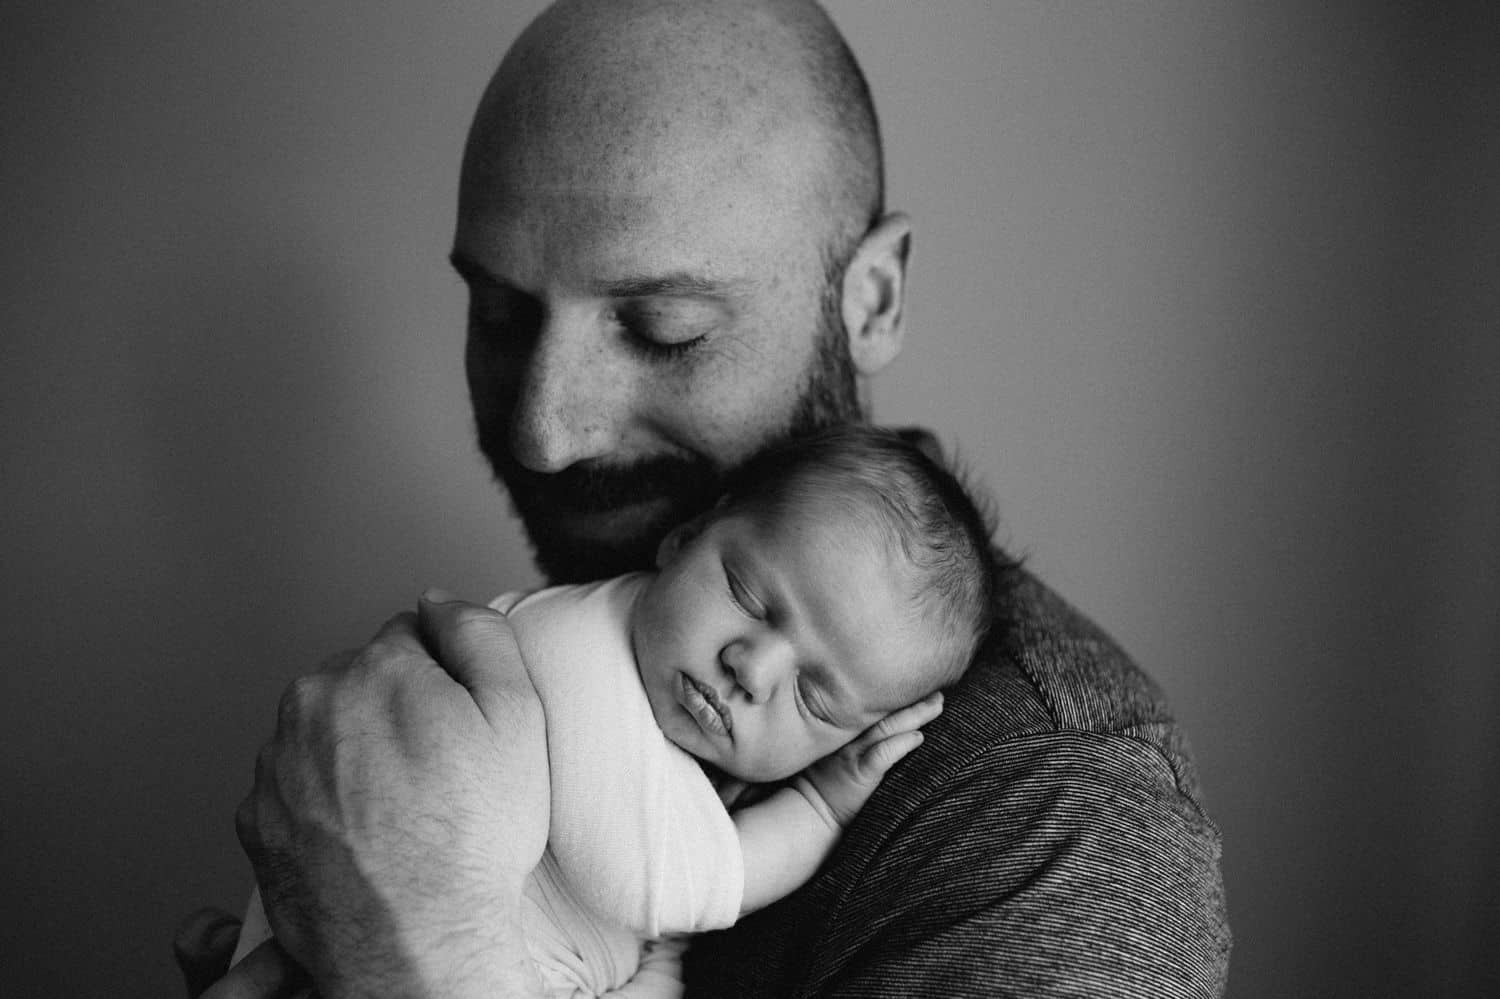 Black and white photo of a father holding his newborn baby close to his cheek.